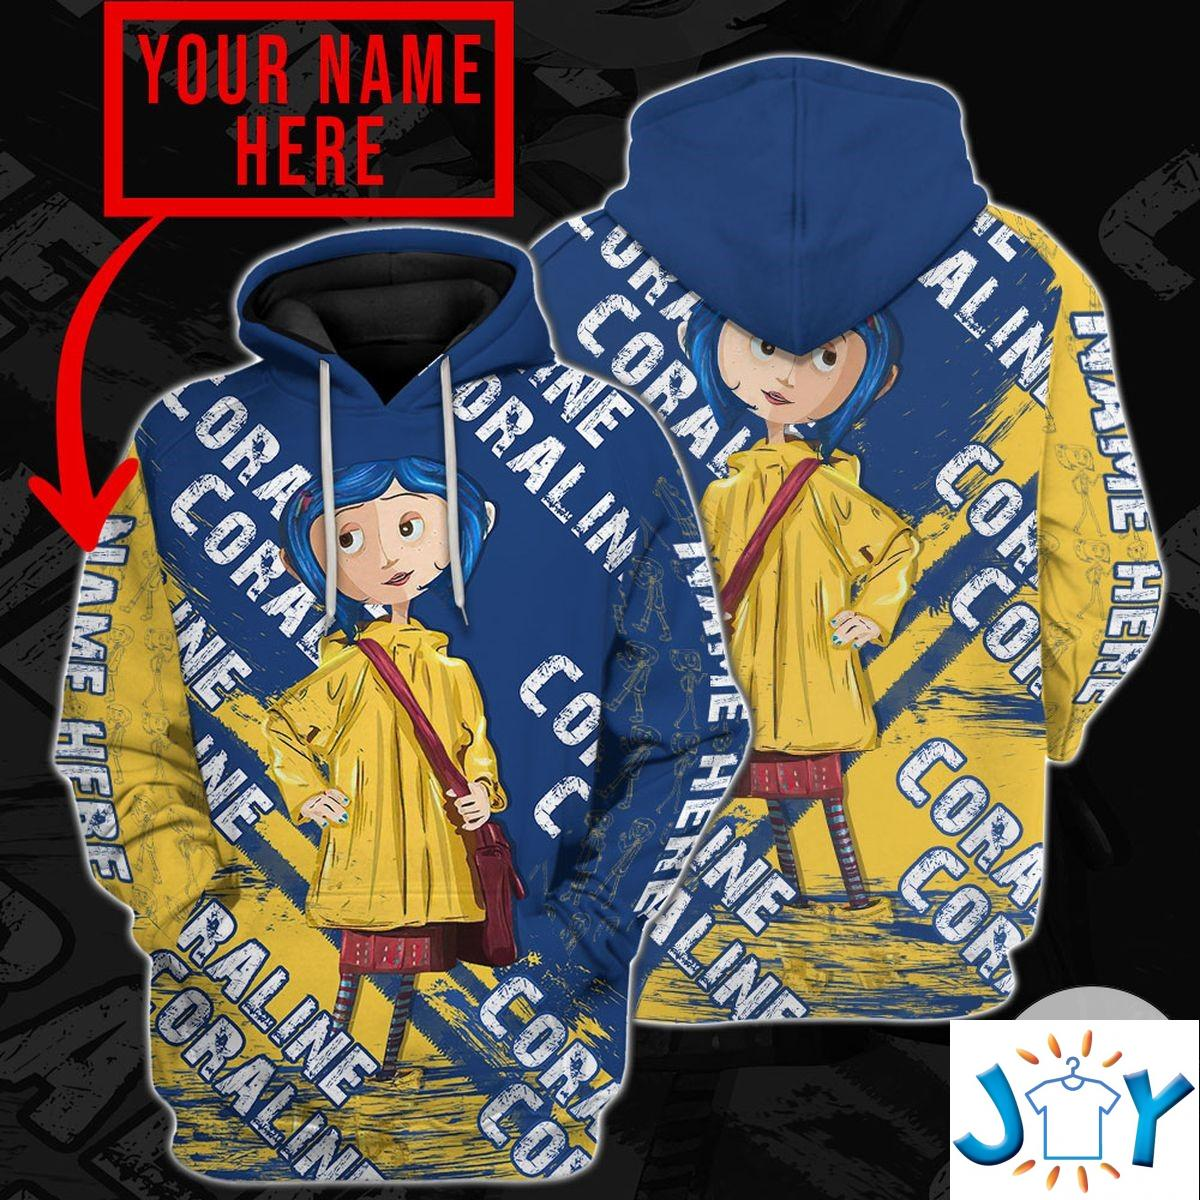 Personalized Coraline Hoodie